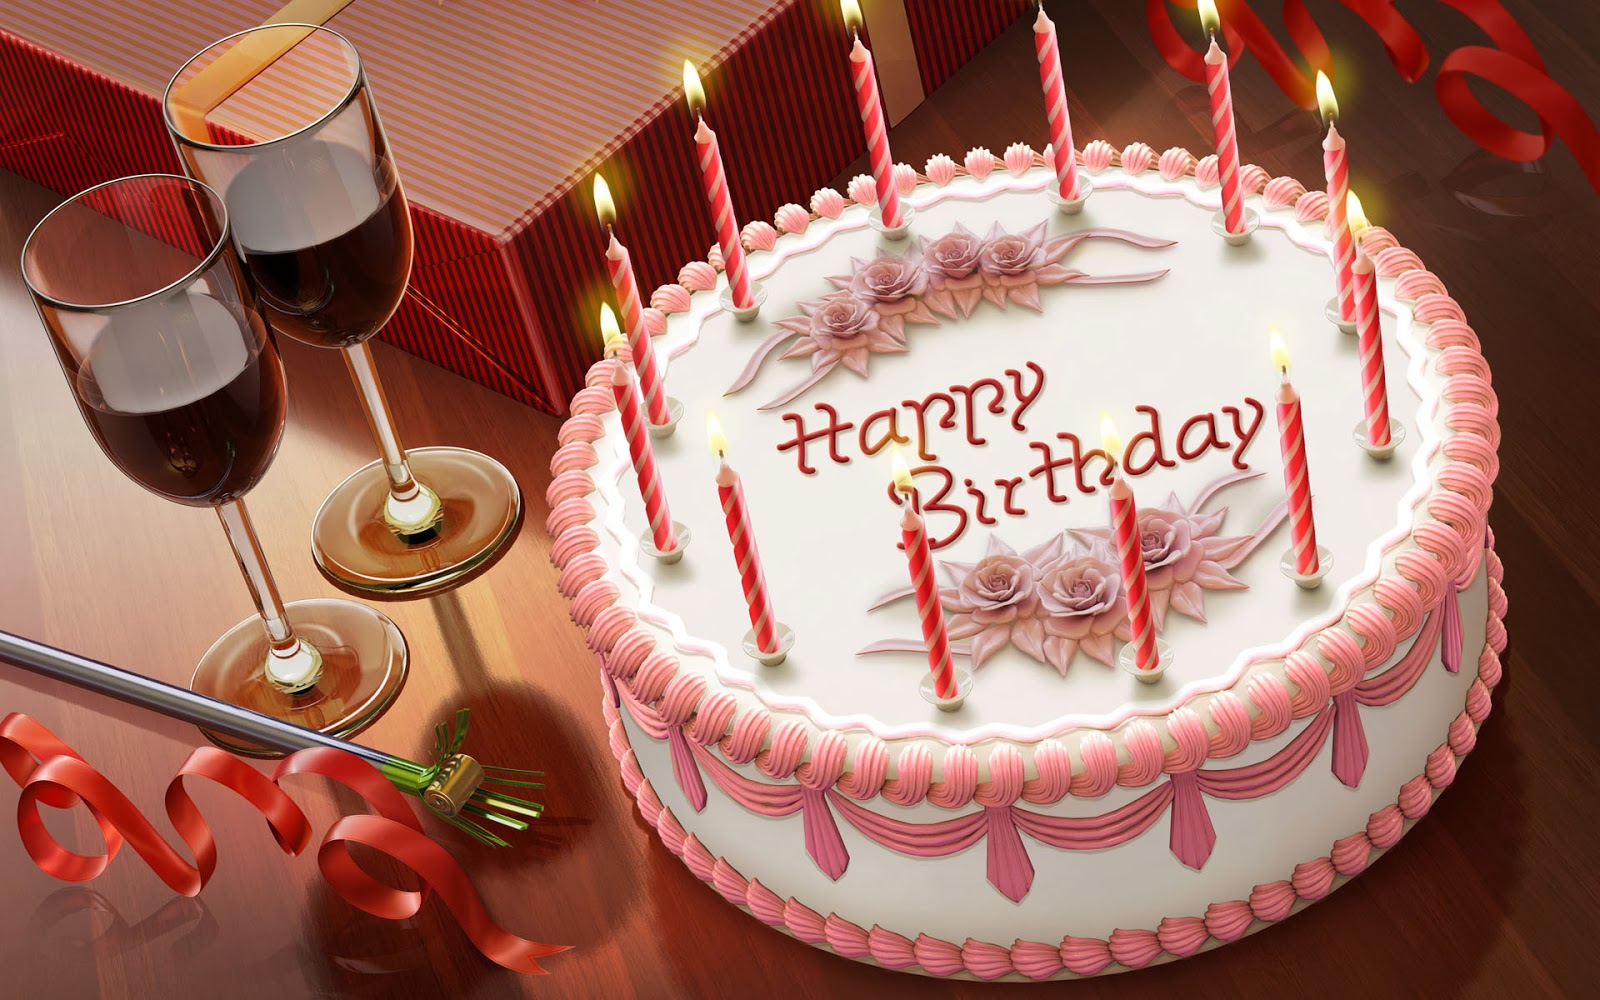 birthday message images download ; 9f410b44cd0770cb3fc1a0988e1f091a